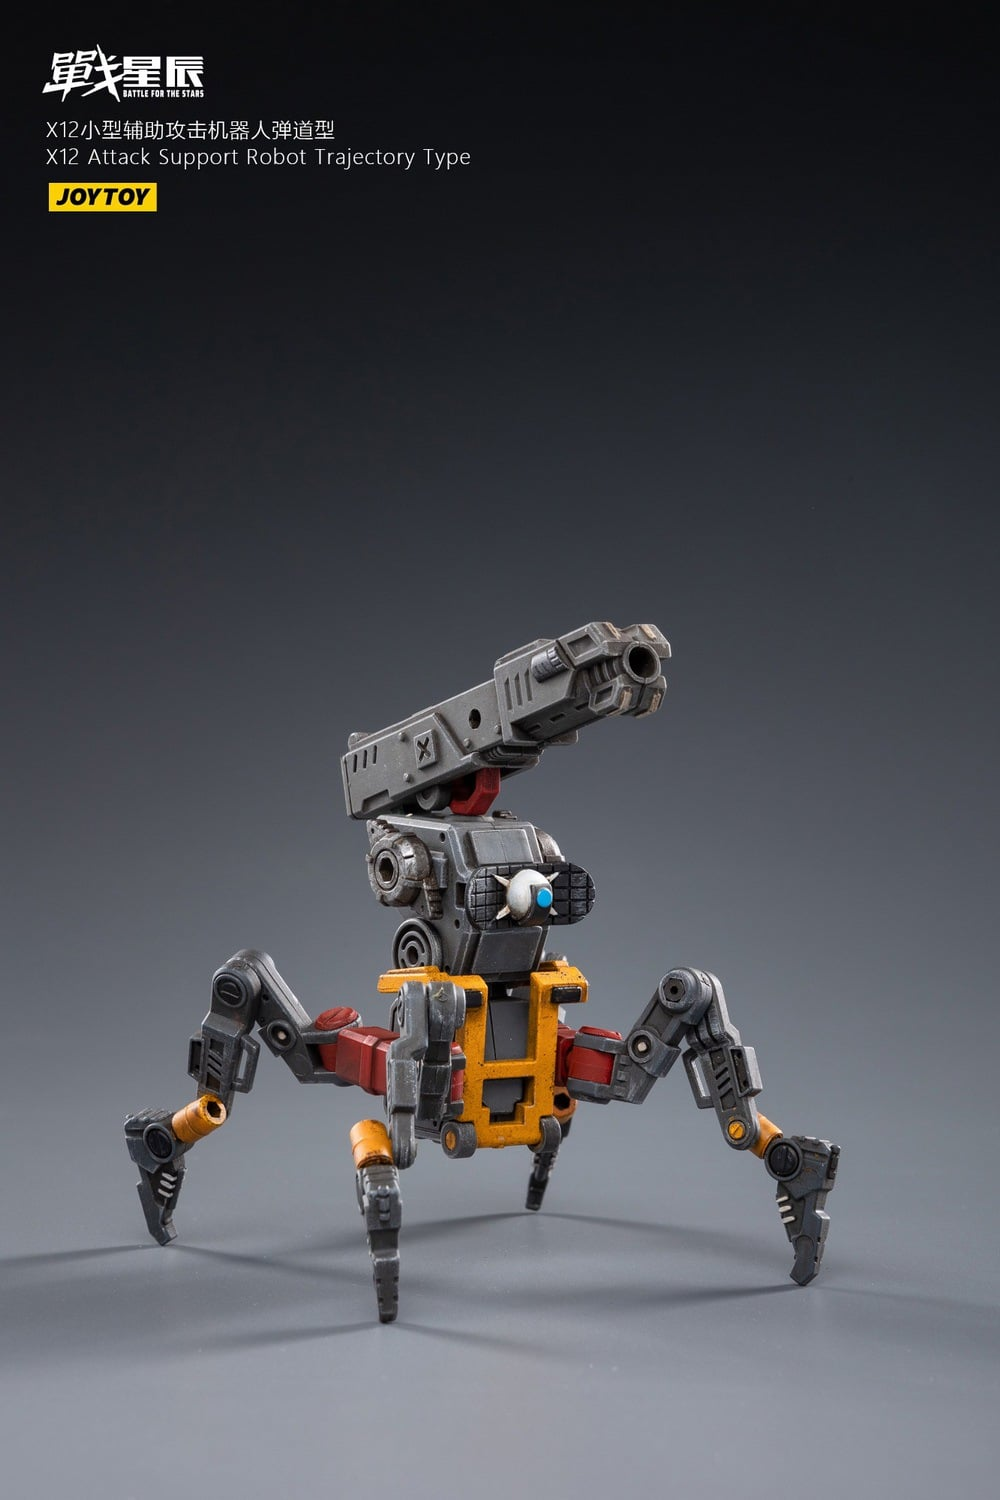 X12 Attack Support Robot<BR>(Trajectory Type - 1:18 Scale)<BR>PREORDER: ETA LATE Q2 2021